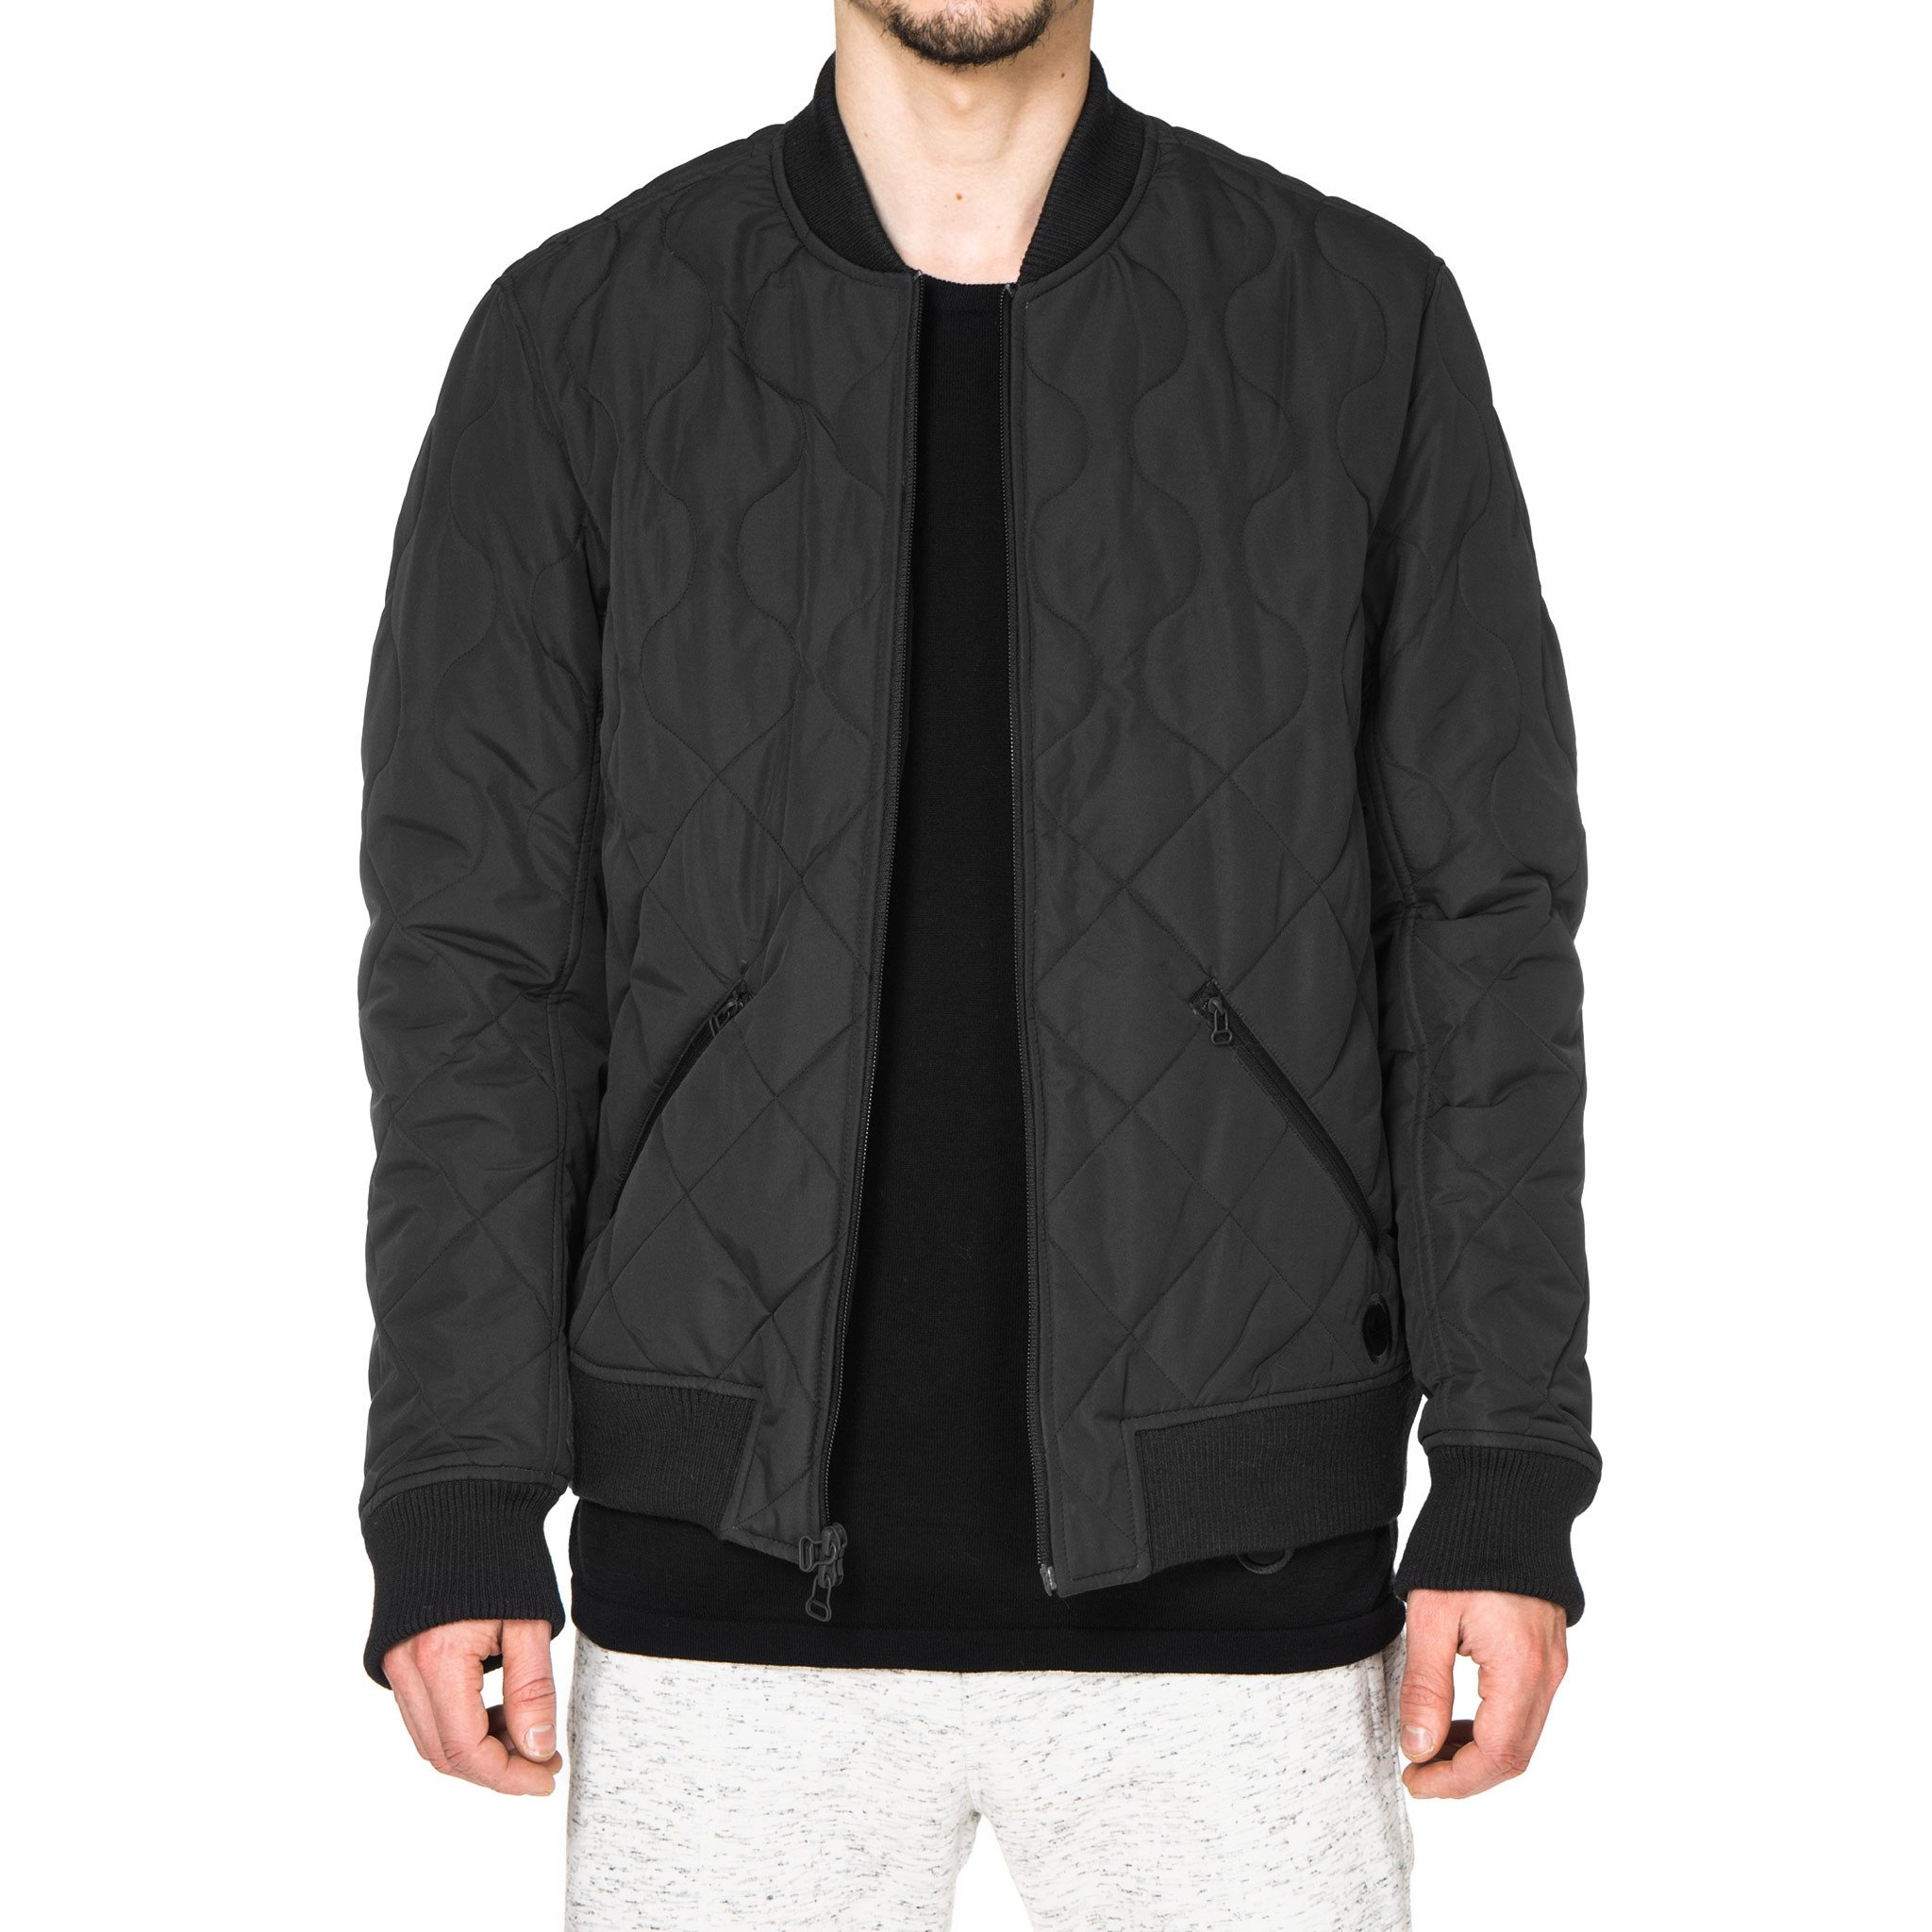 adidas-Wings-Horns-Insulated-Bomber-Black-2 2048x2048